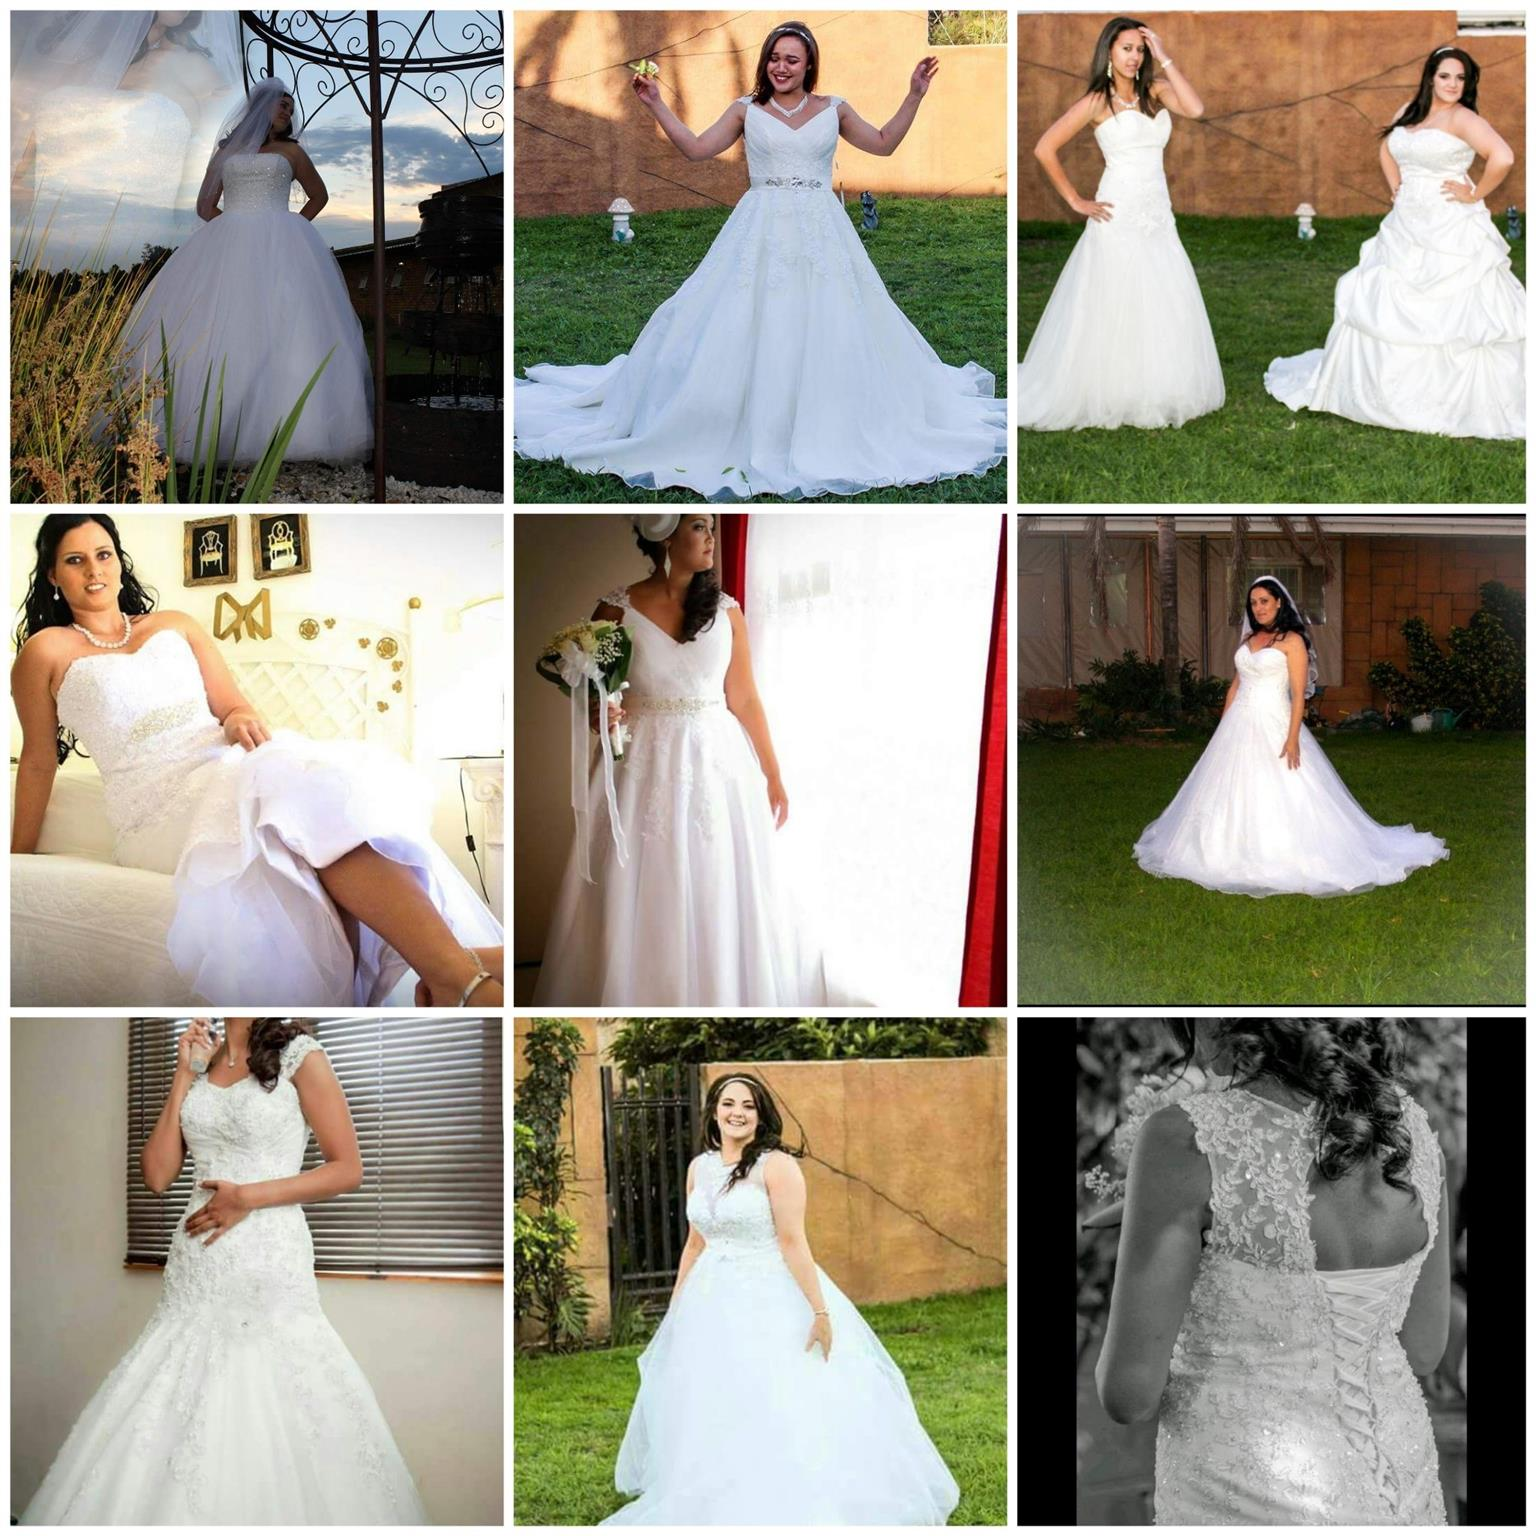 Affordable Wedding Dresses For Hire From R1000